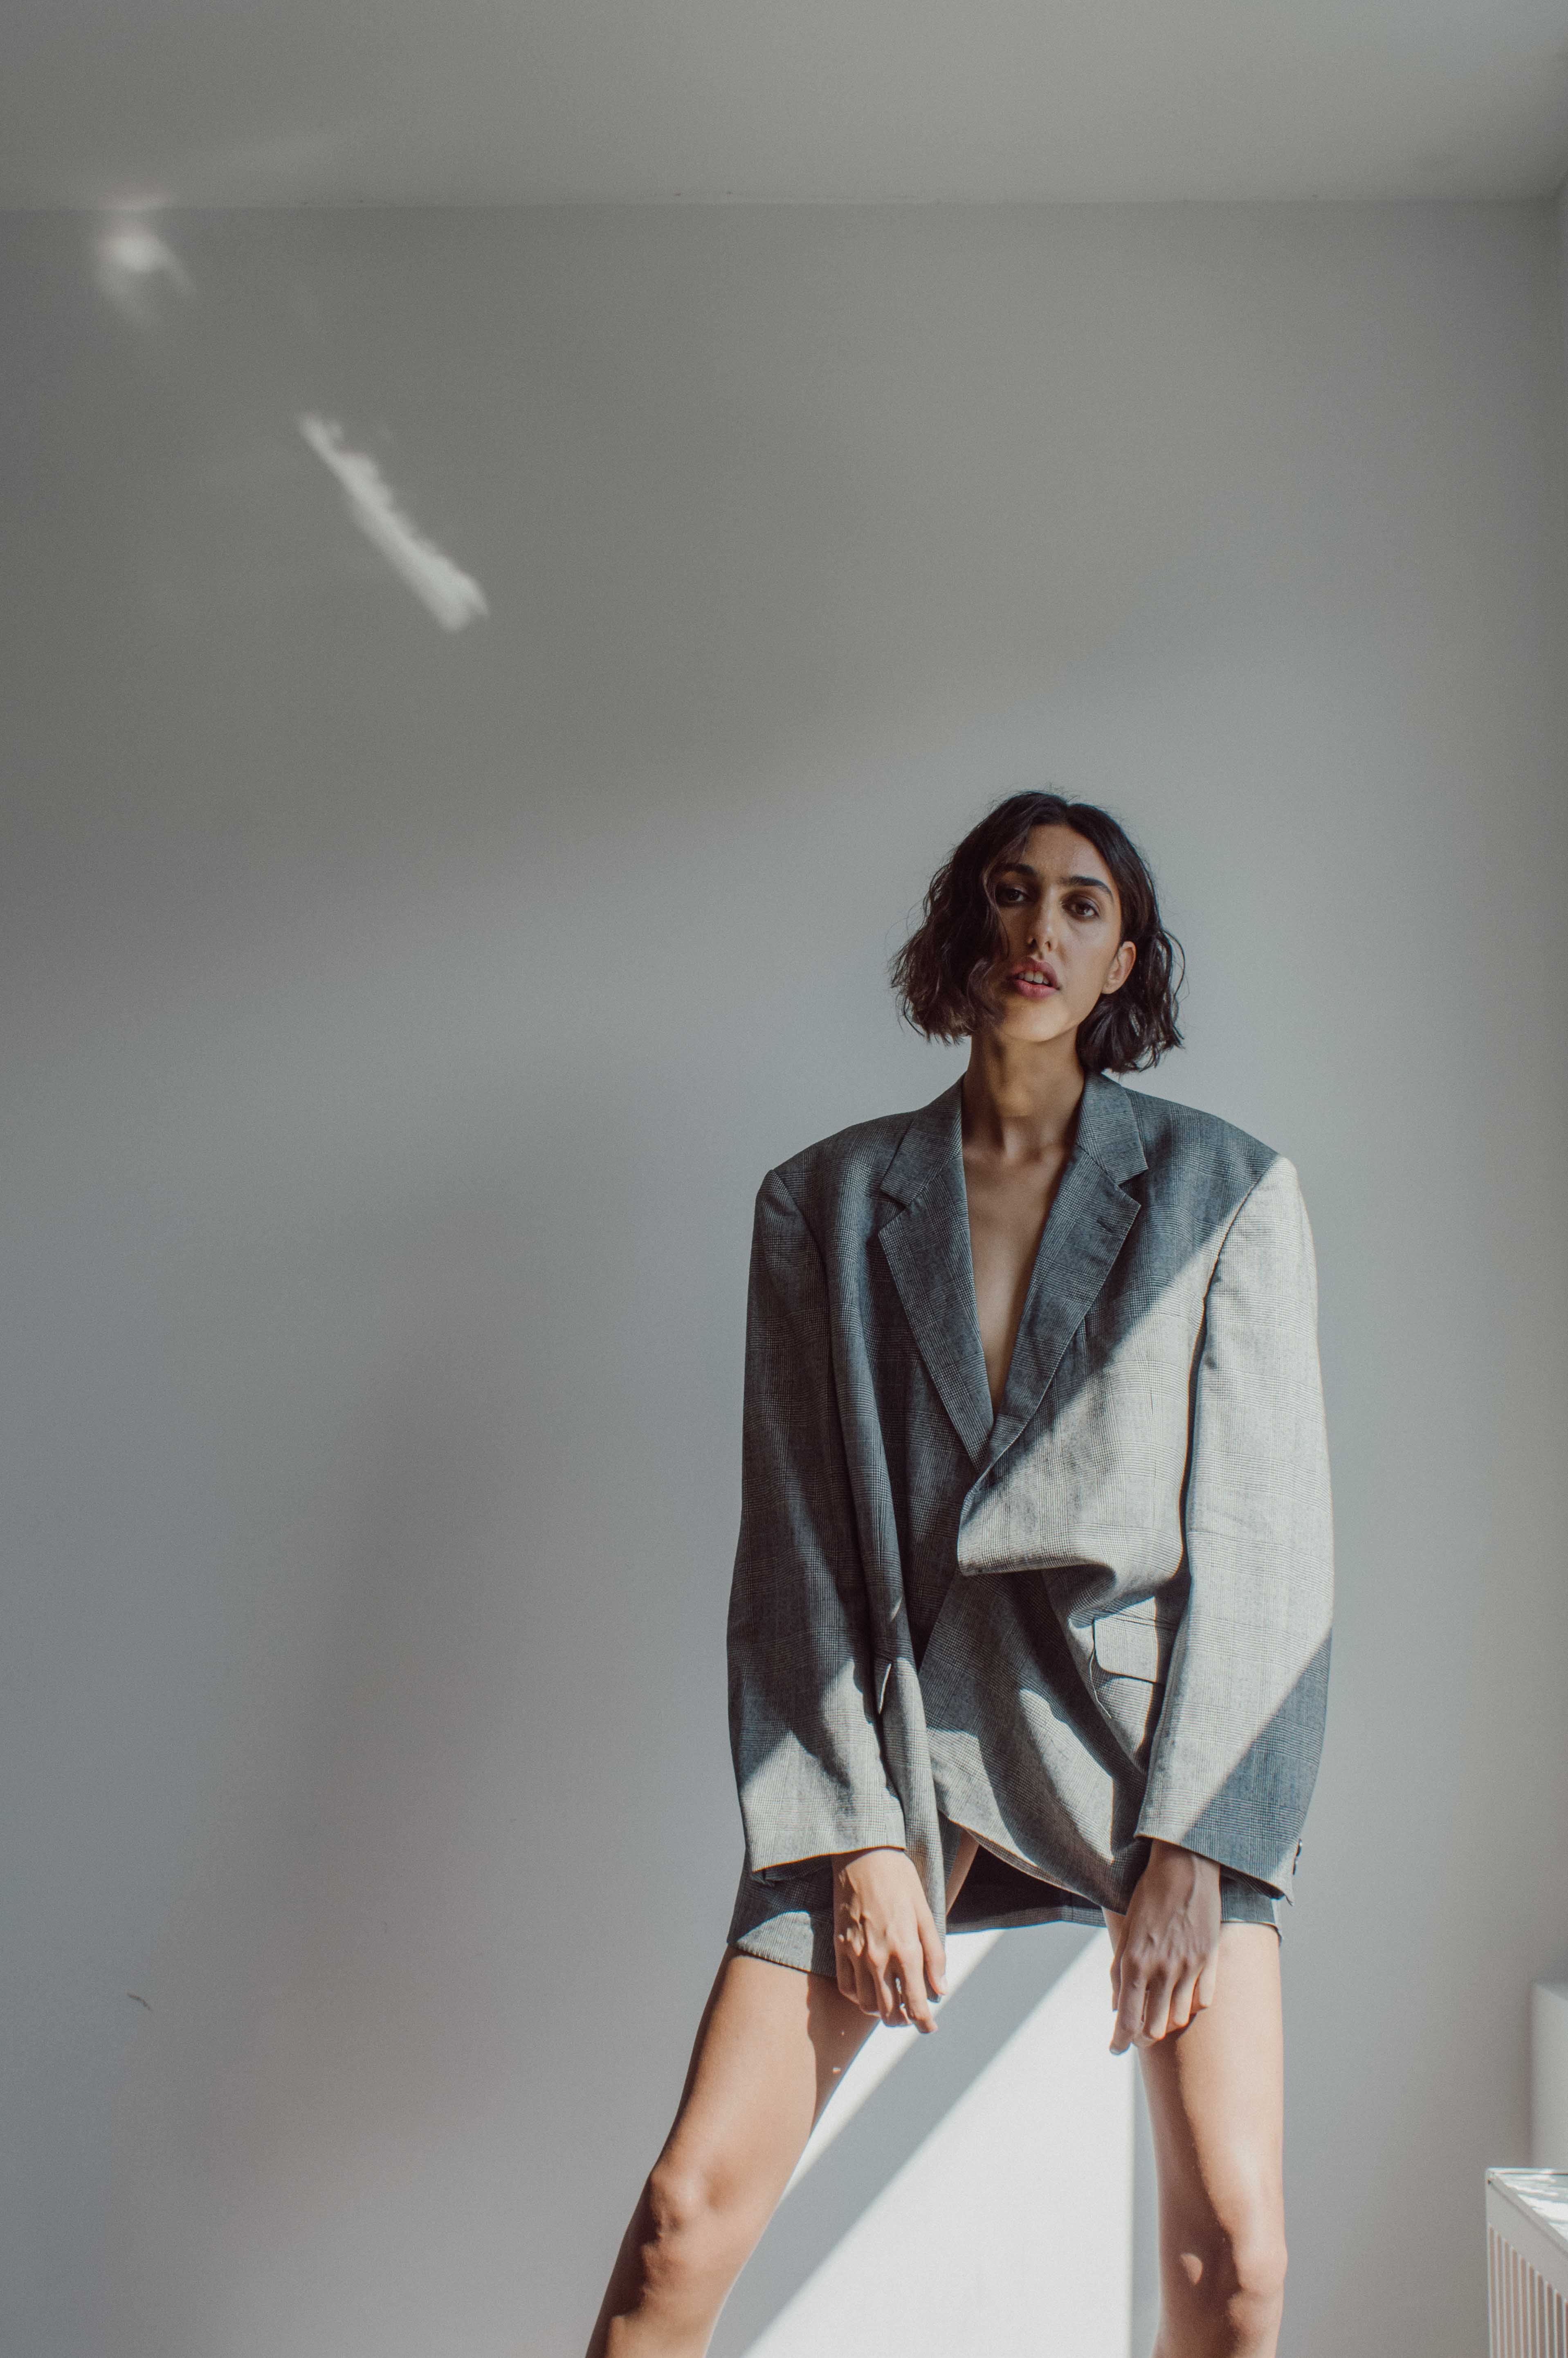 Fade to Dusk fashion editorial photography and creative direction by Lola Noir, Model Mattanja Ewida, styling by Candice Kruishaar, makeup & hair by Iraj Raghosing